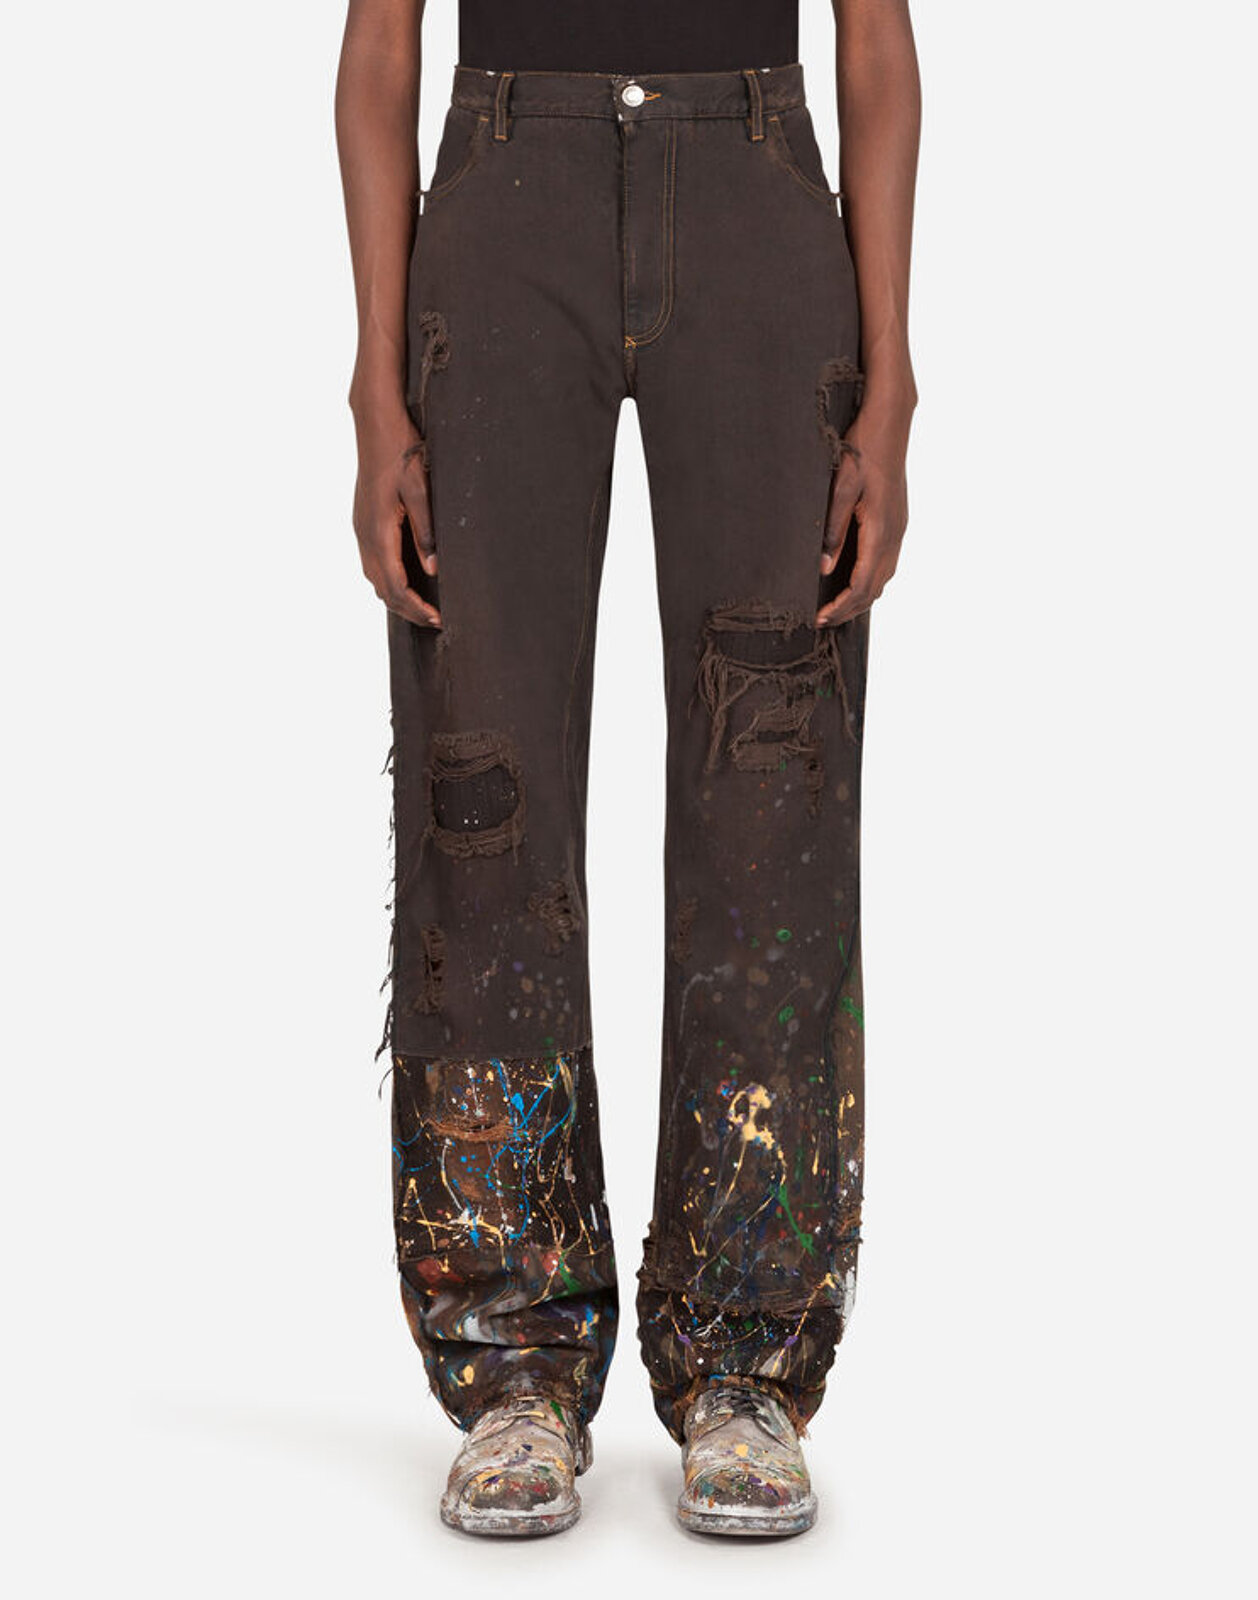 Color Dripping Effect Denim Trousers - Dolce & Gabbana